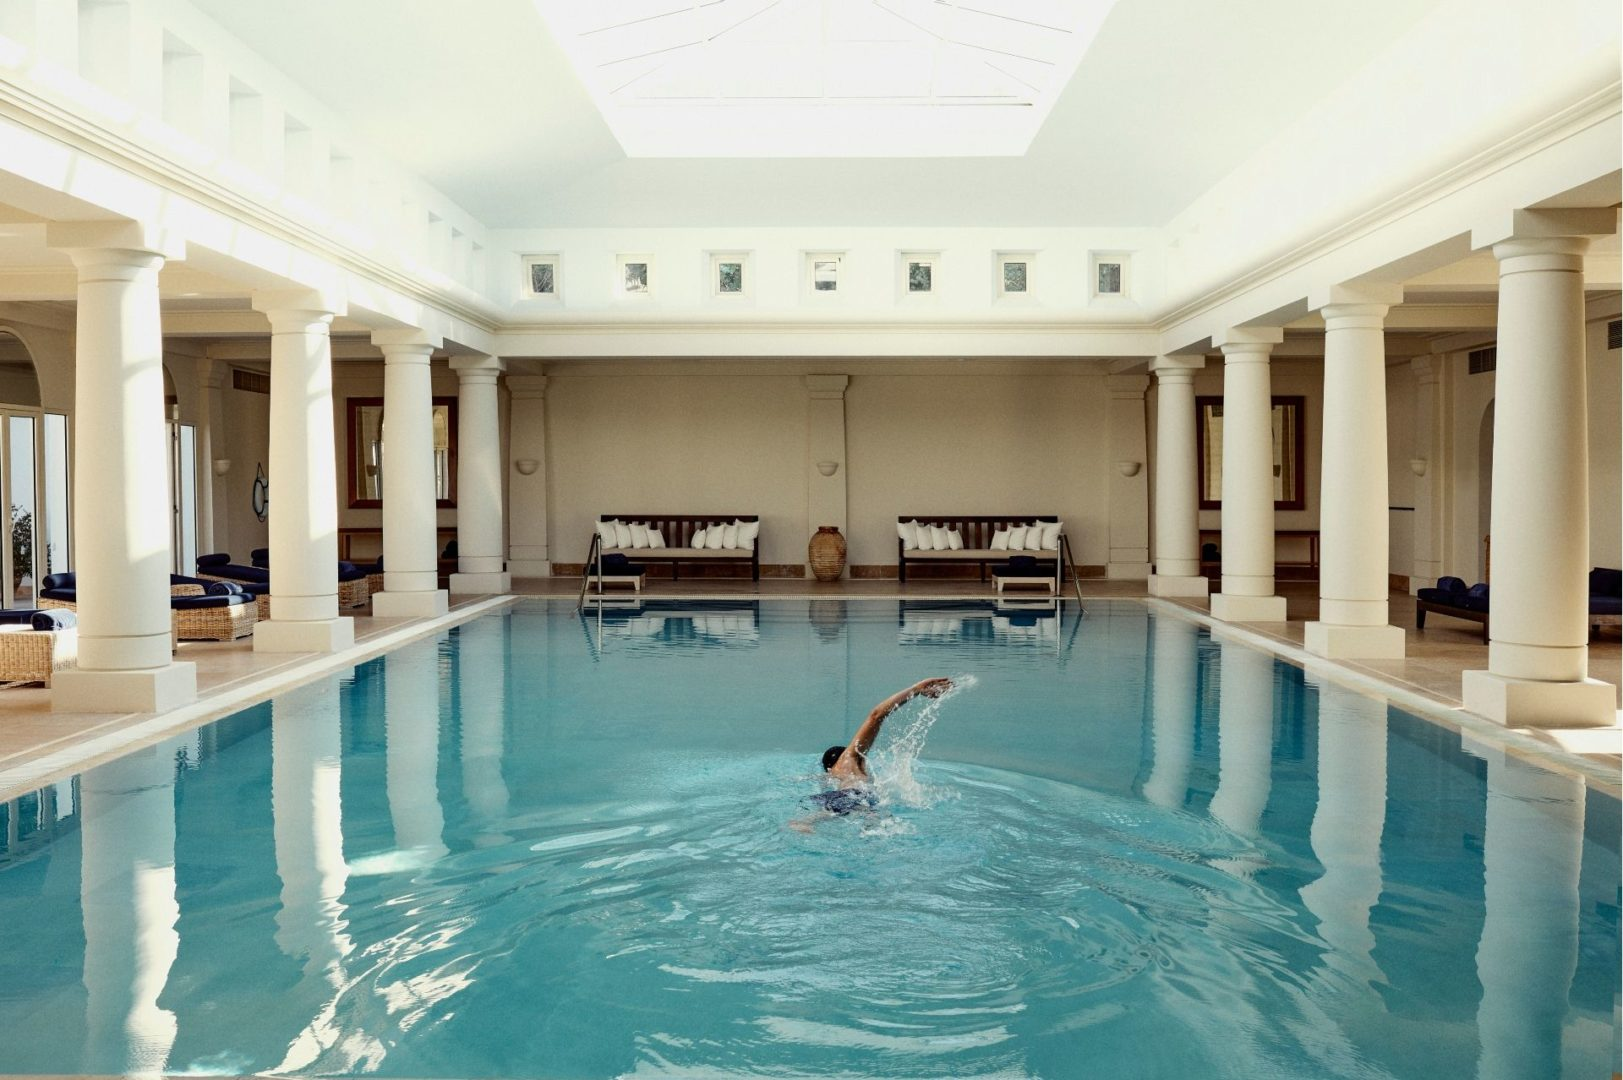 The Spa indoor pool